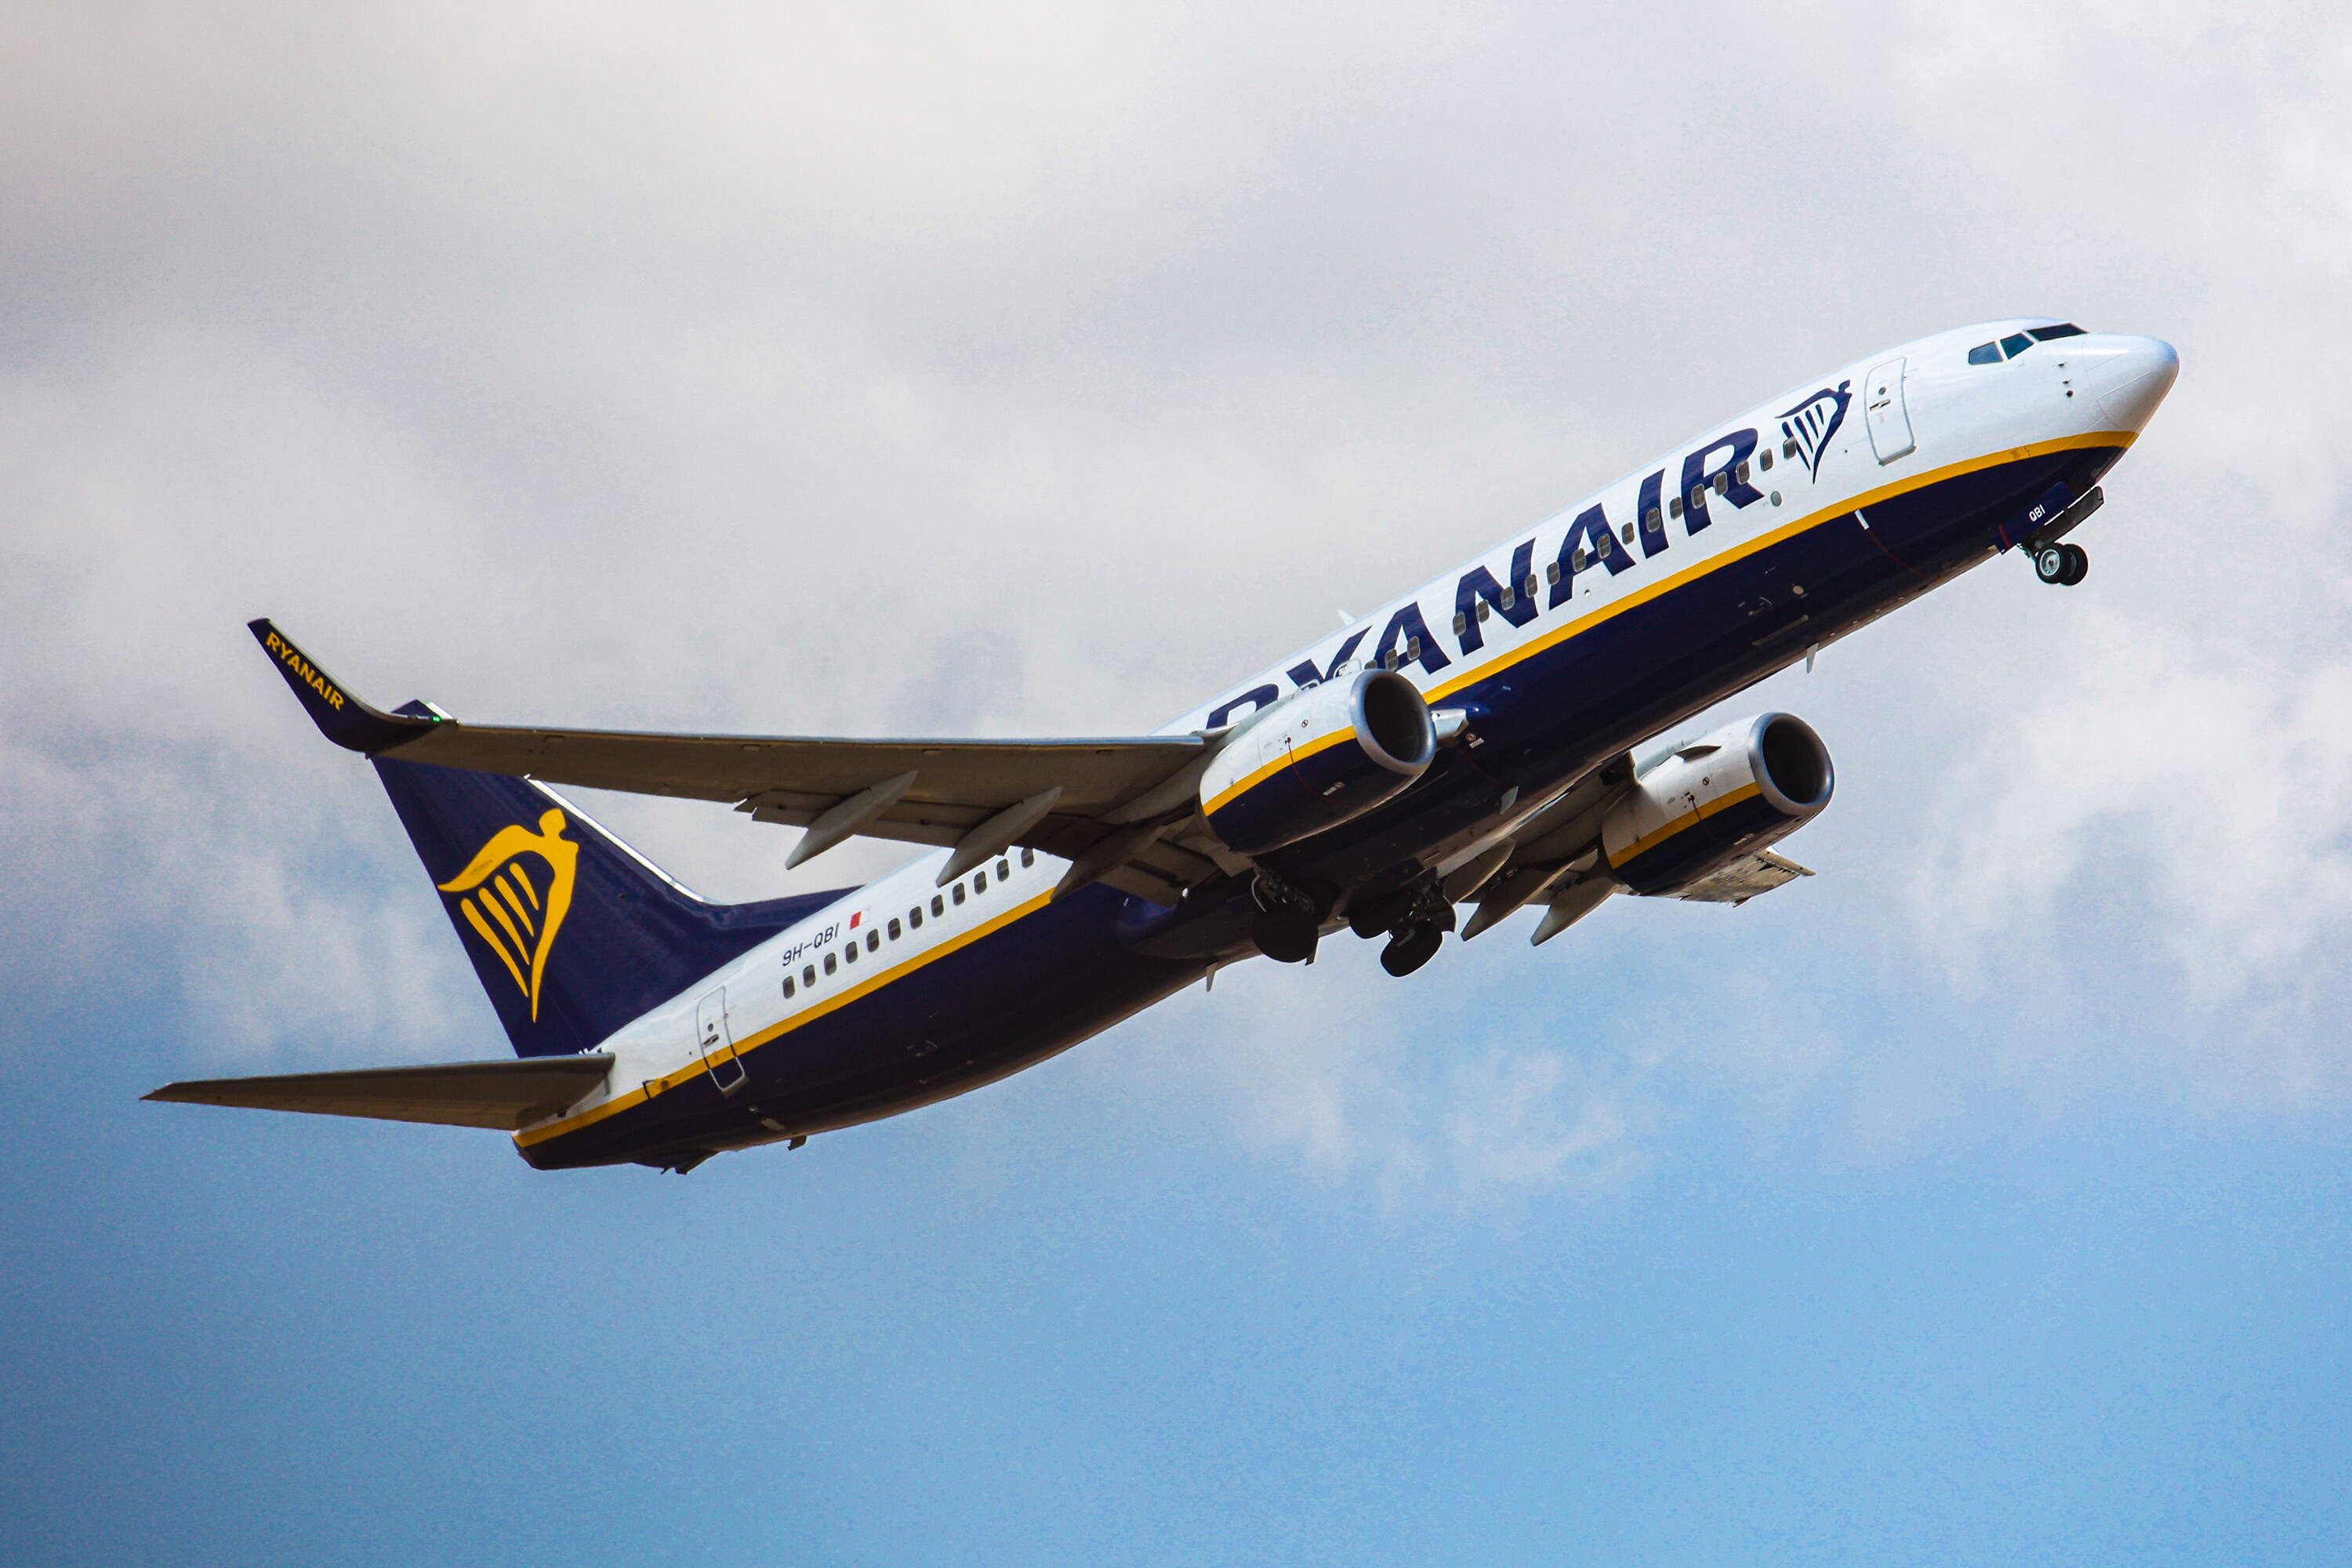 Ryanair and Boeing have fallen out in public. Here's why that matters